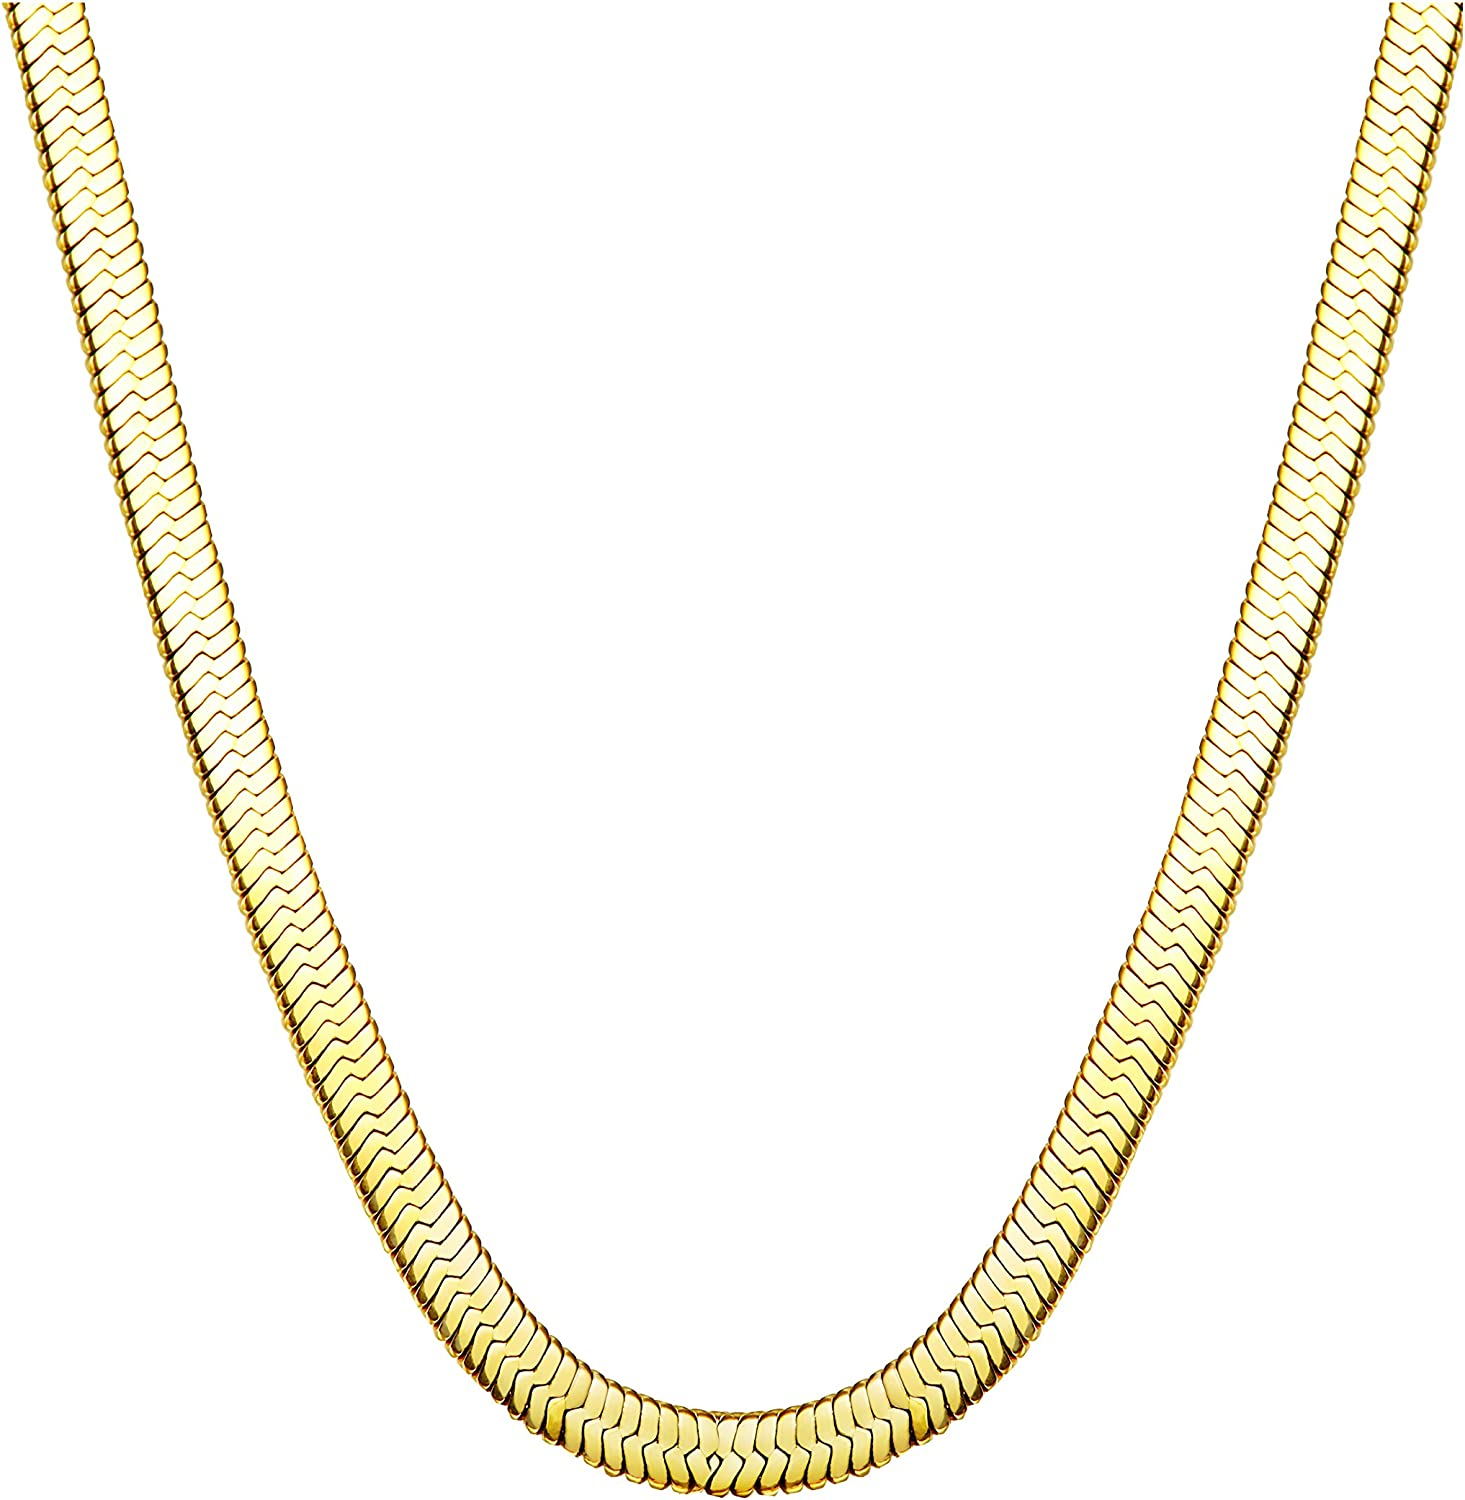 Jstyle Stainless Steel Necklace for Men Women Nickel-Free Herringbone Chain 16